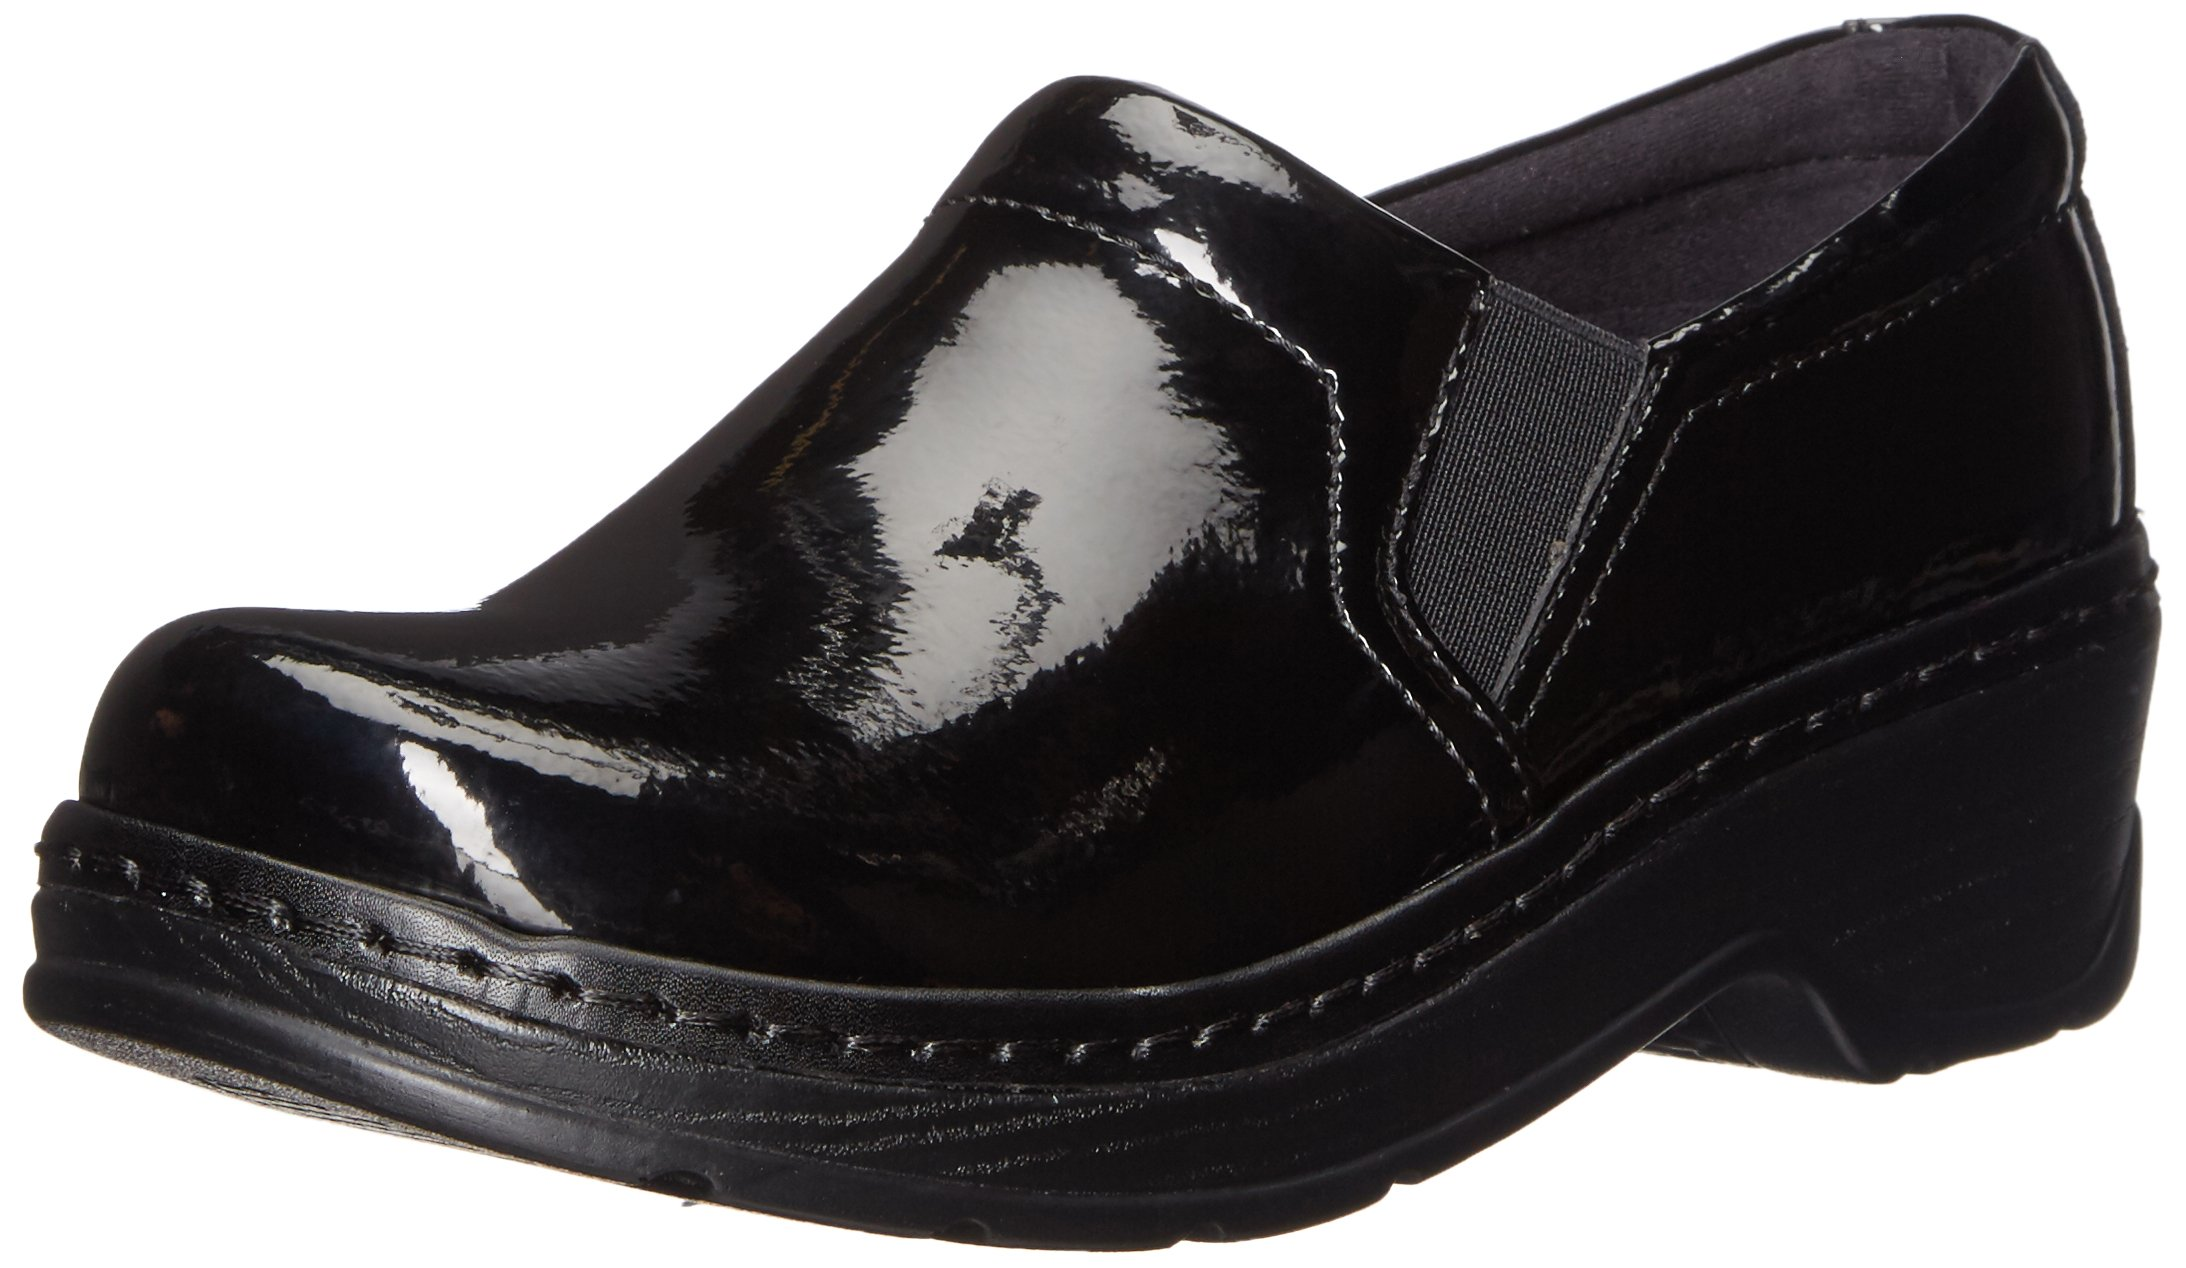 Klogs USA Women's Naples Mule, Black Patent, 6.5 M US